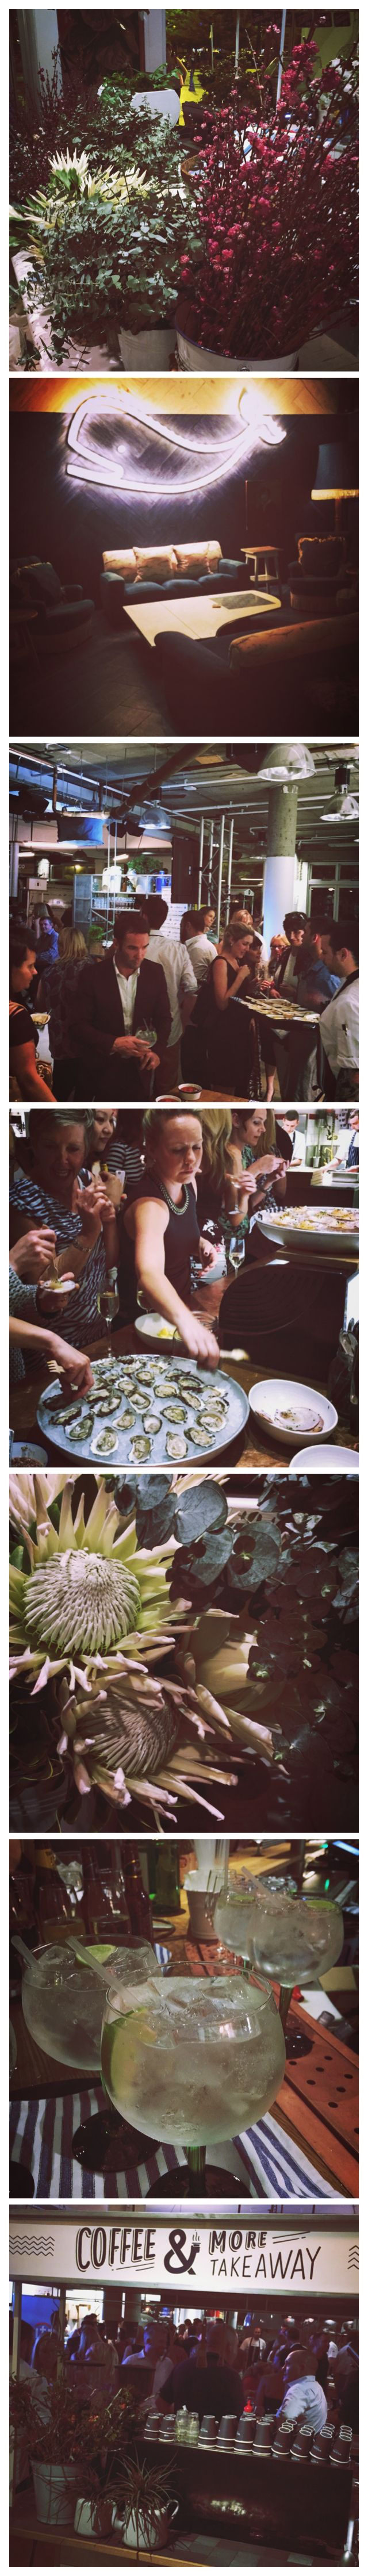 #goodfoodmonth #sydney #launch #coogee